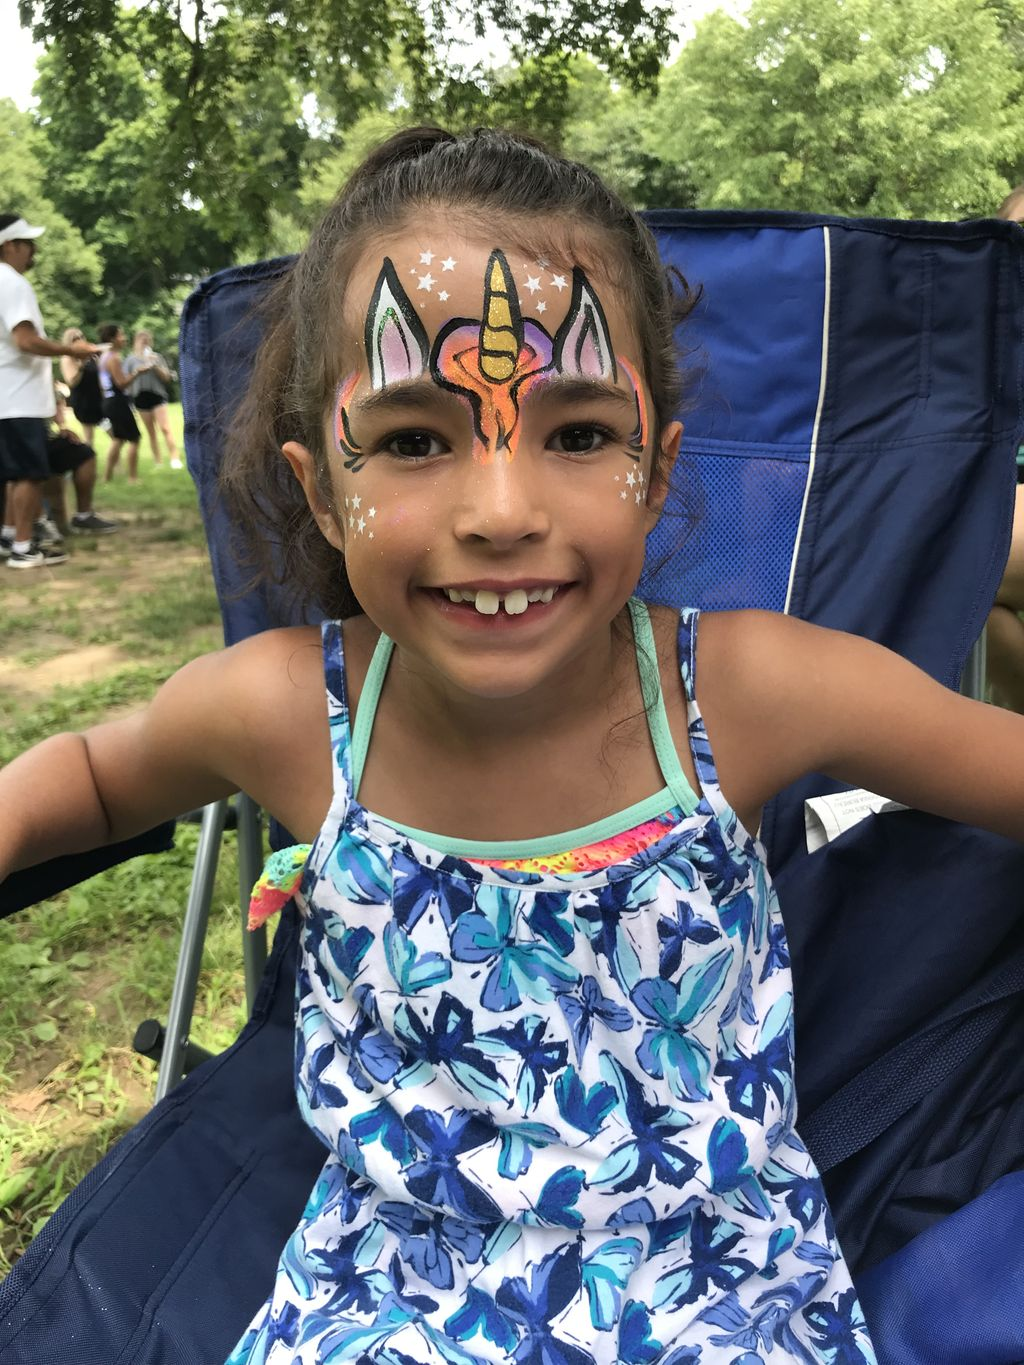 Outdoor 6th Birthday Party at Beaver Brook Reservation